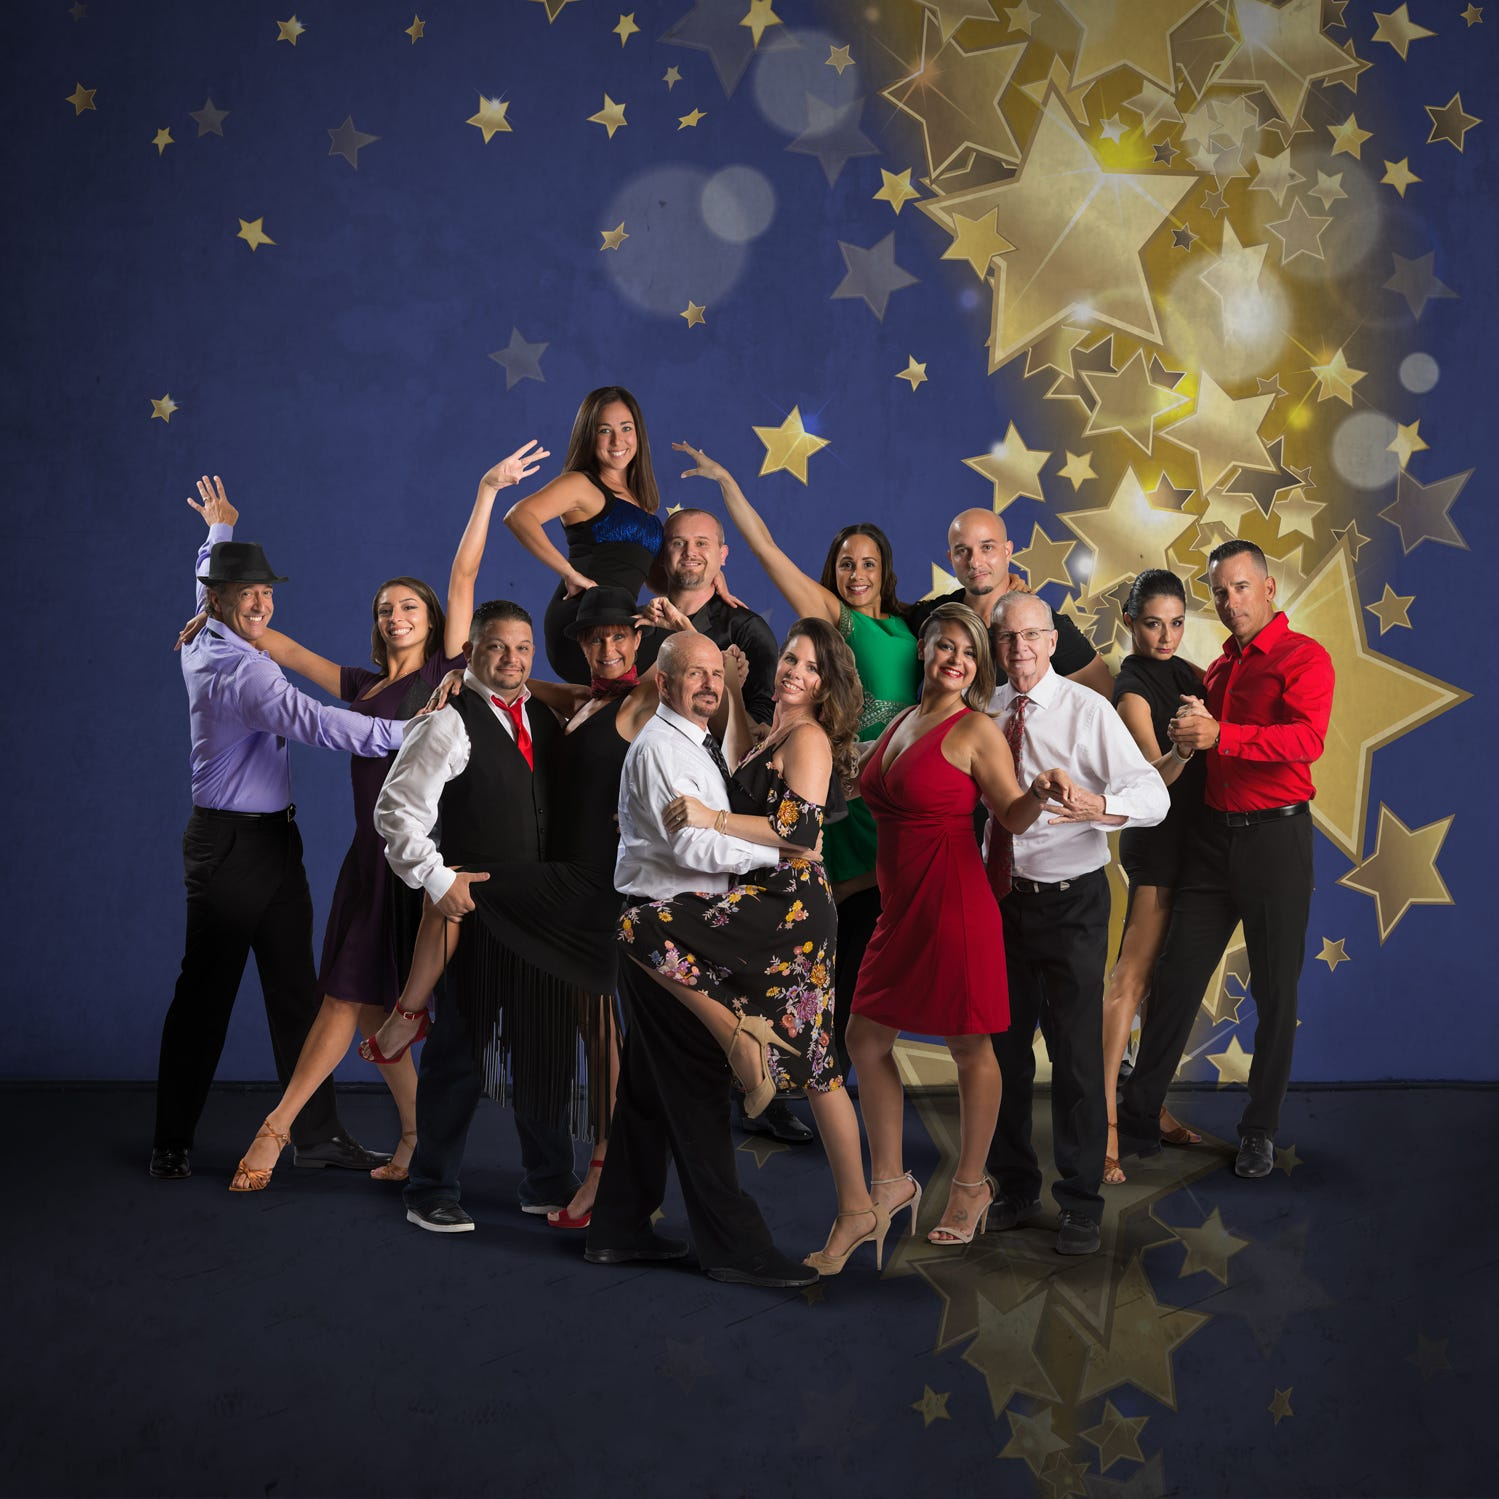 Casting now open for the 2019 Dancing with Martin Stars